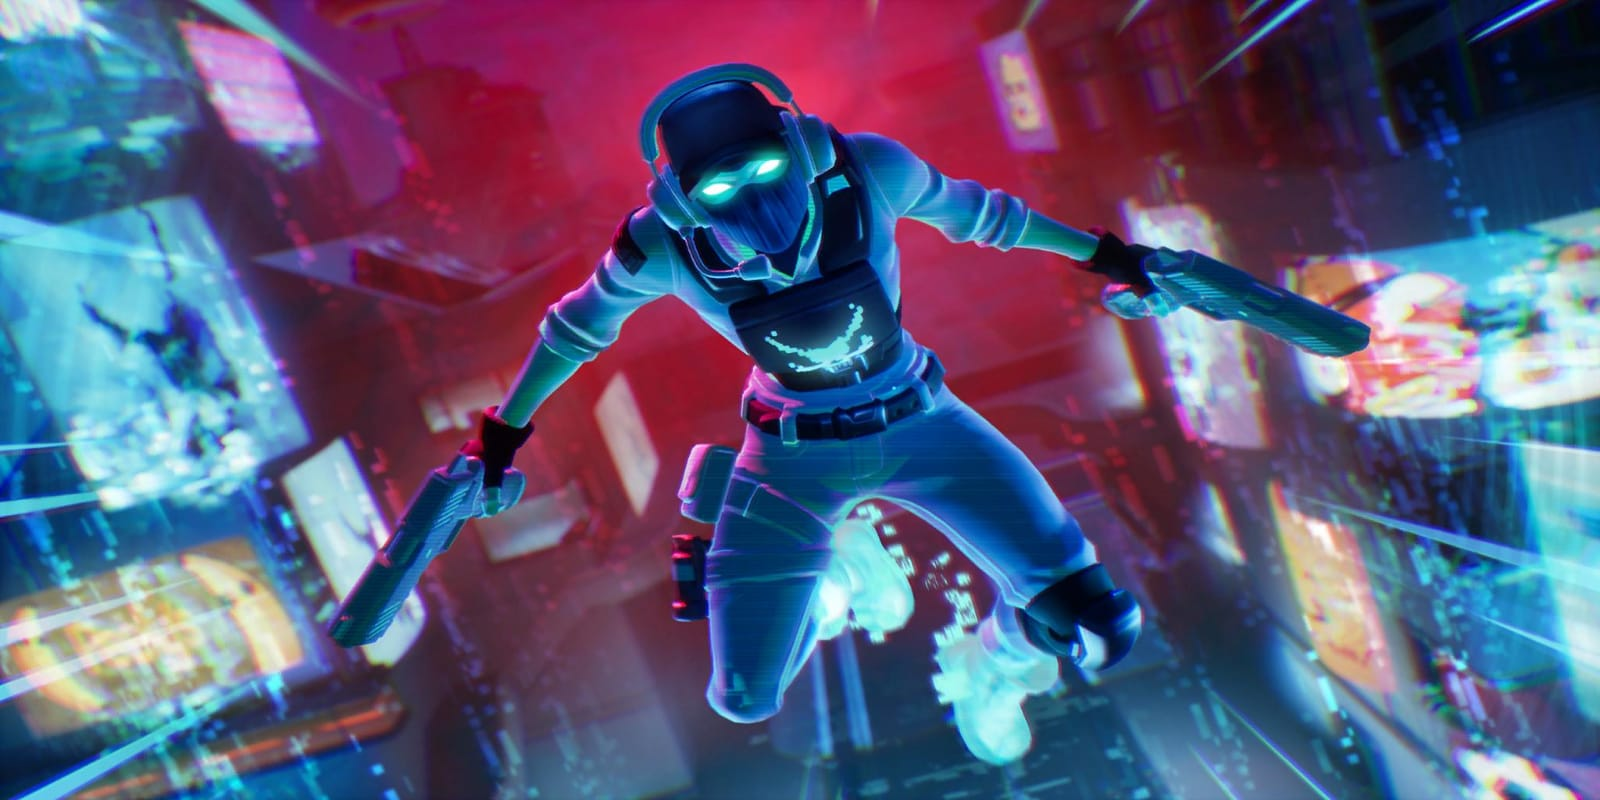 fortnite season 9 week 10 loading screen